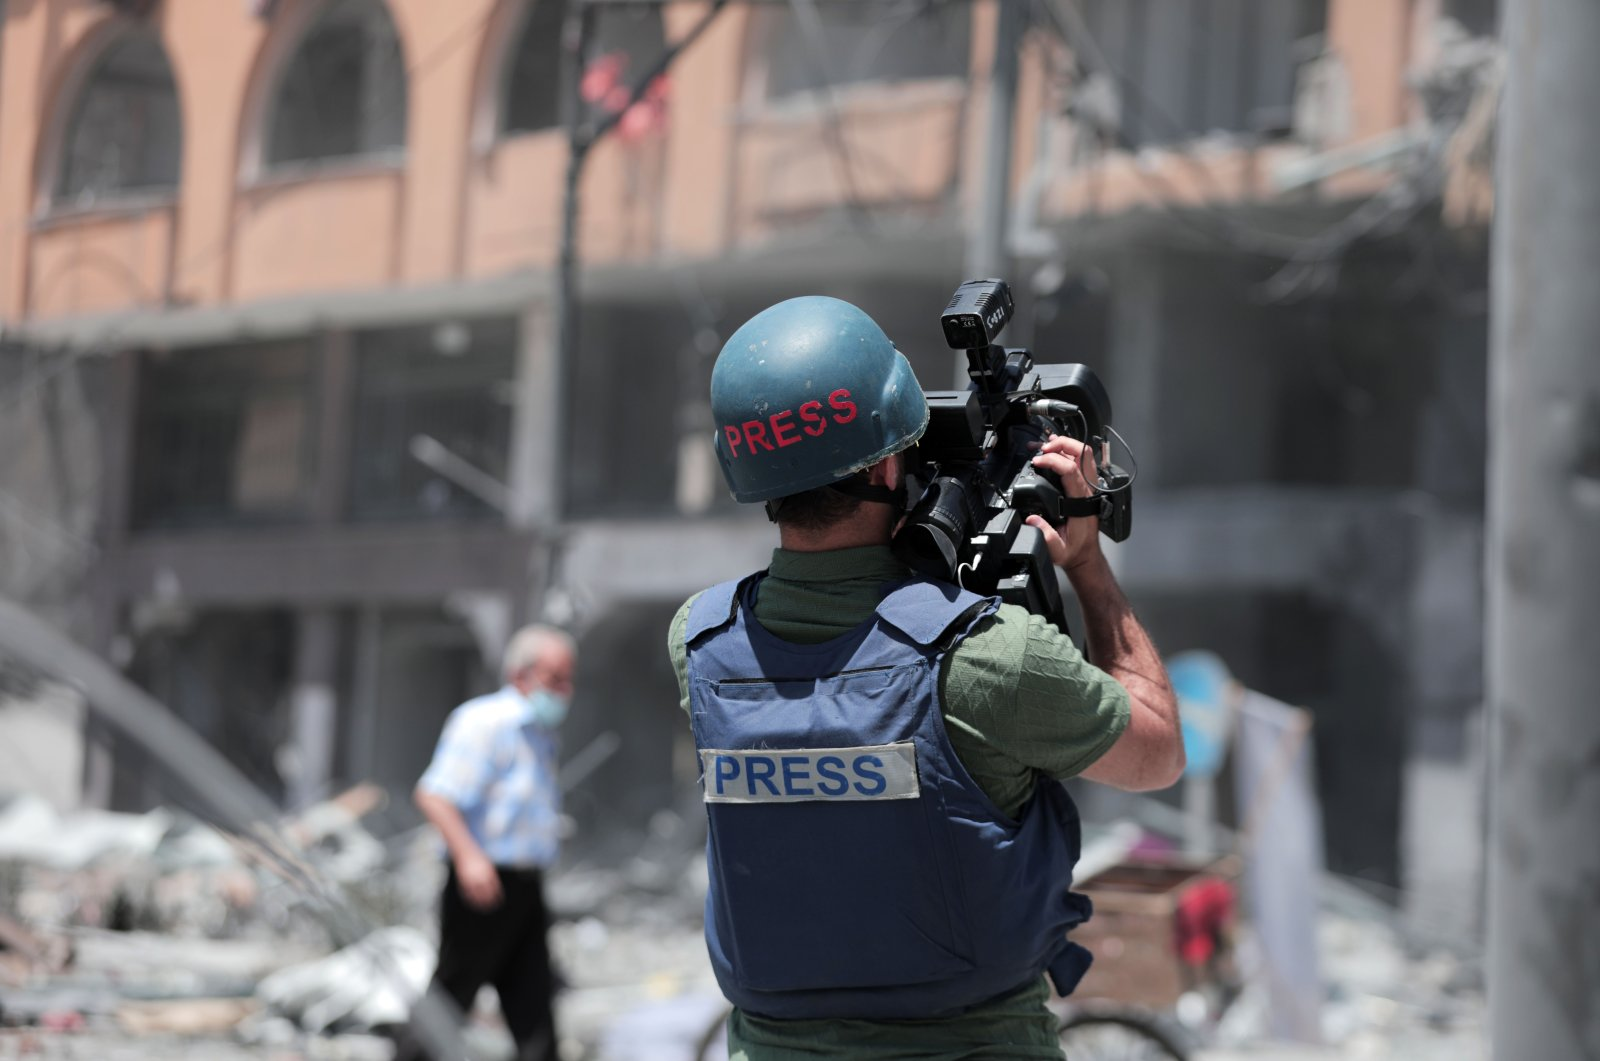 A Palestinian journalist films the aftermath of the Israeli attacks in Gaza City, Palestine, May 12, 2021. (Photo by Getty Images)